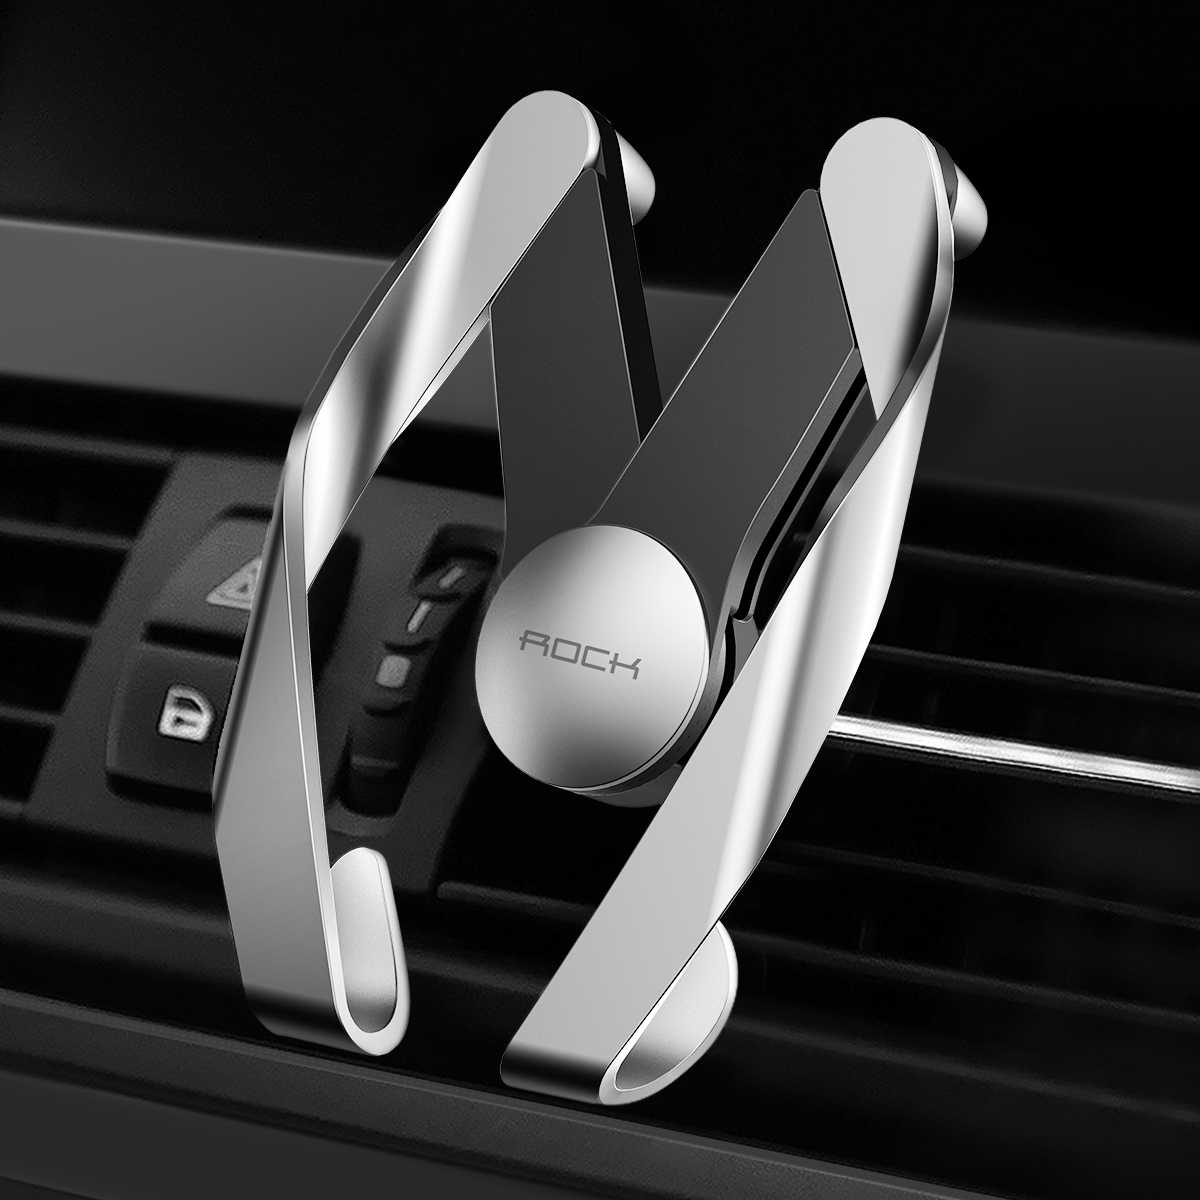 medium resolution of rock universal autobot mobile vent phone car holder for iphone samsung car abs material air outlet